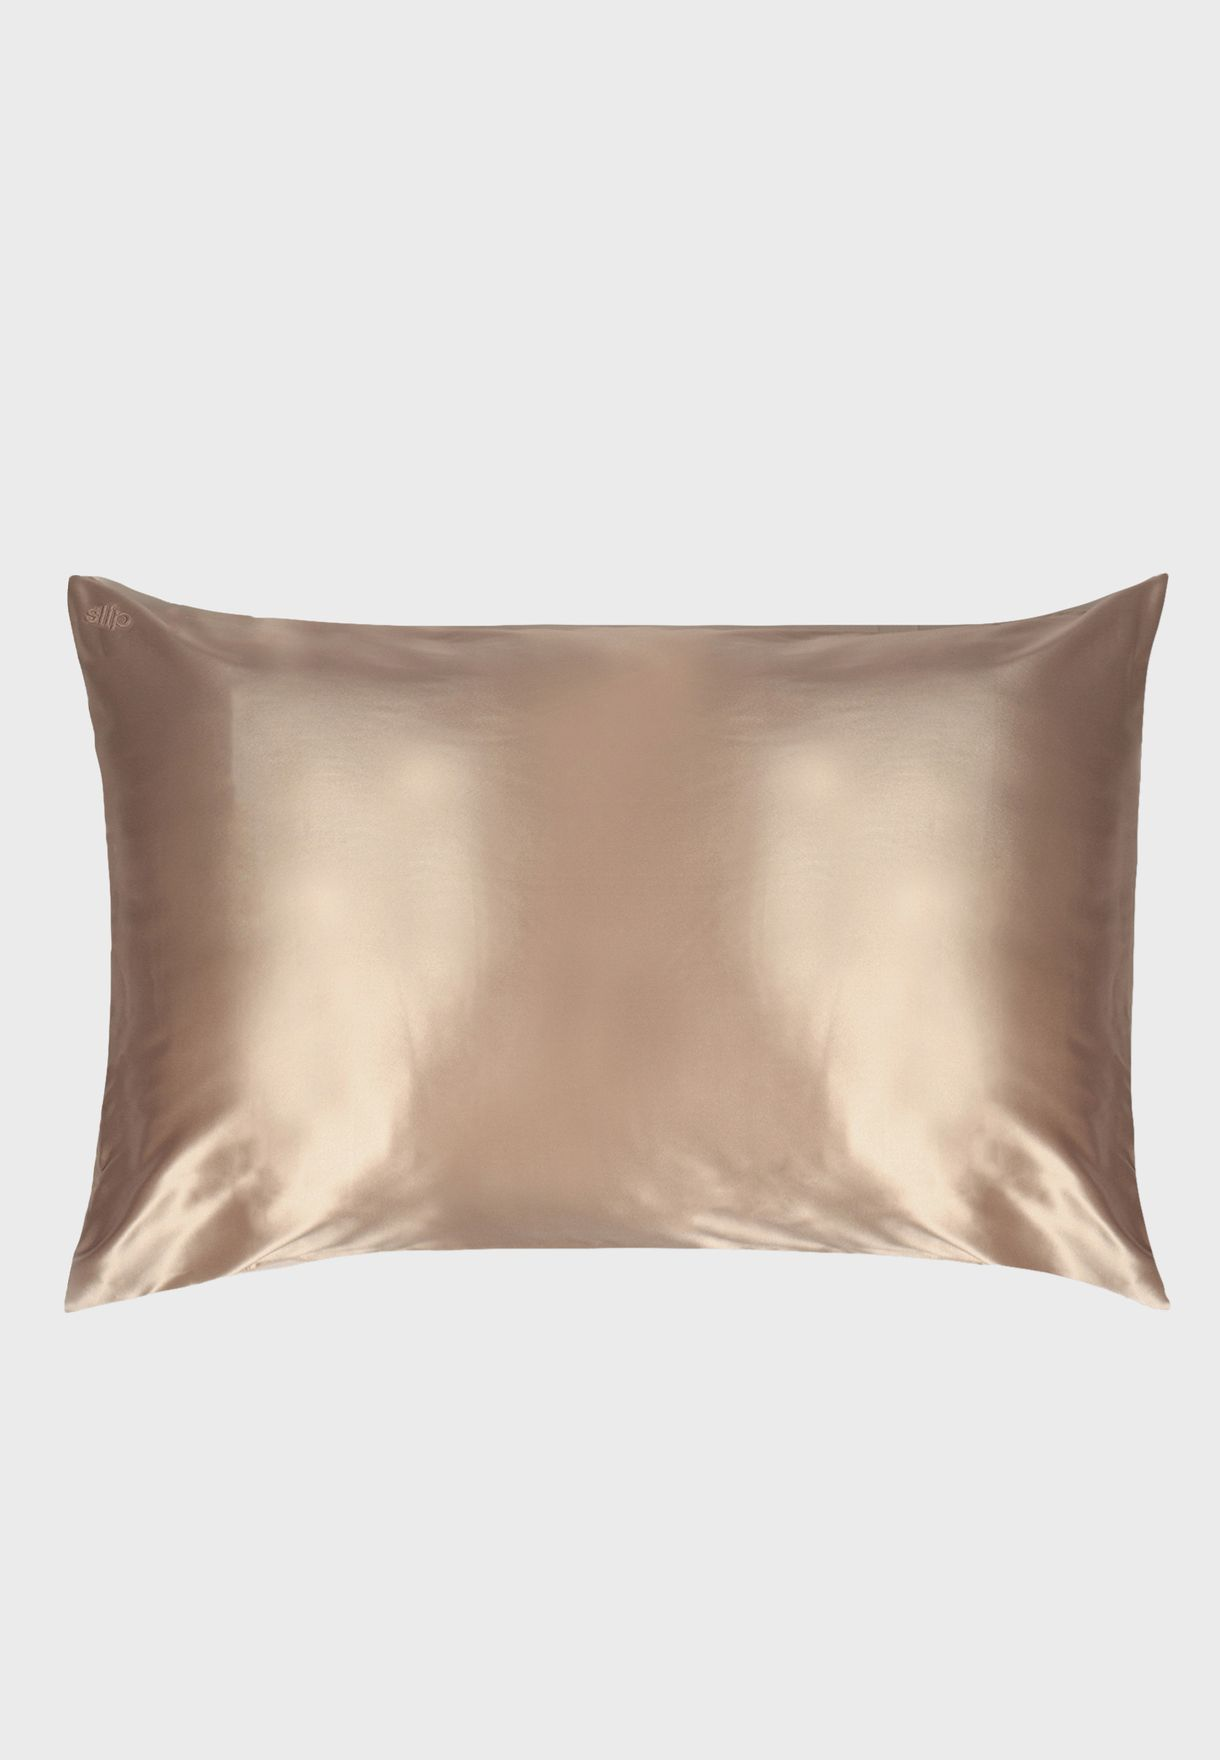 Queen Size Silk Pillow Case - Caramel